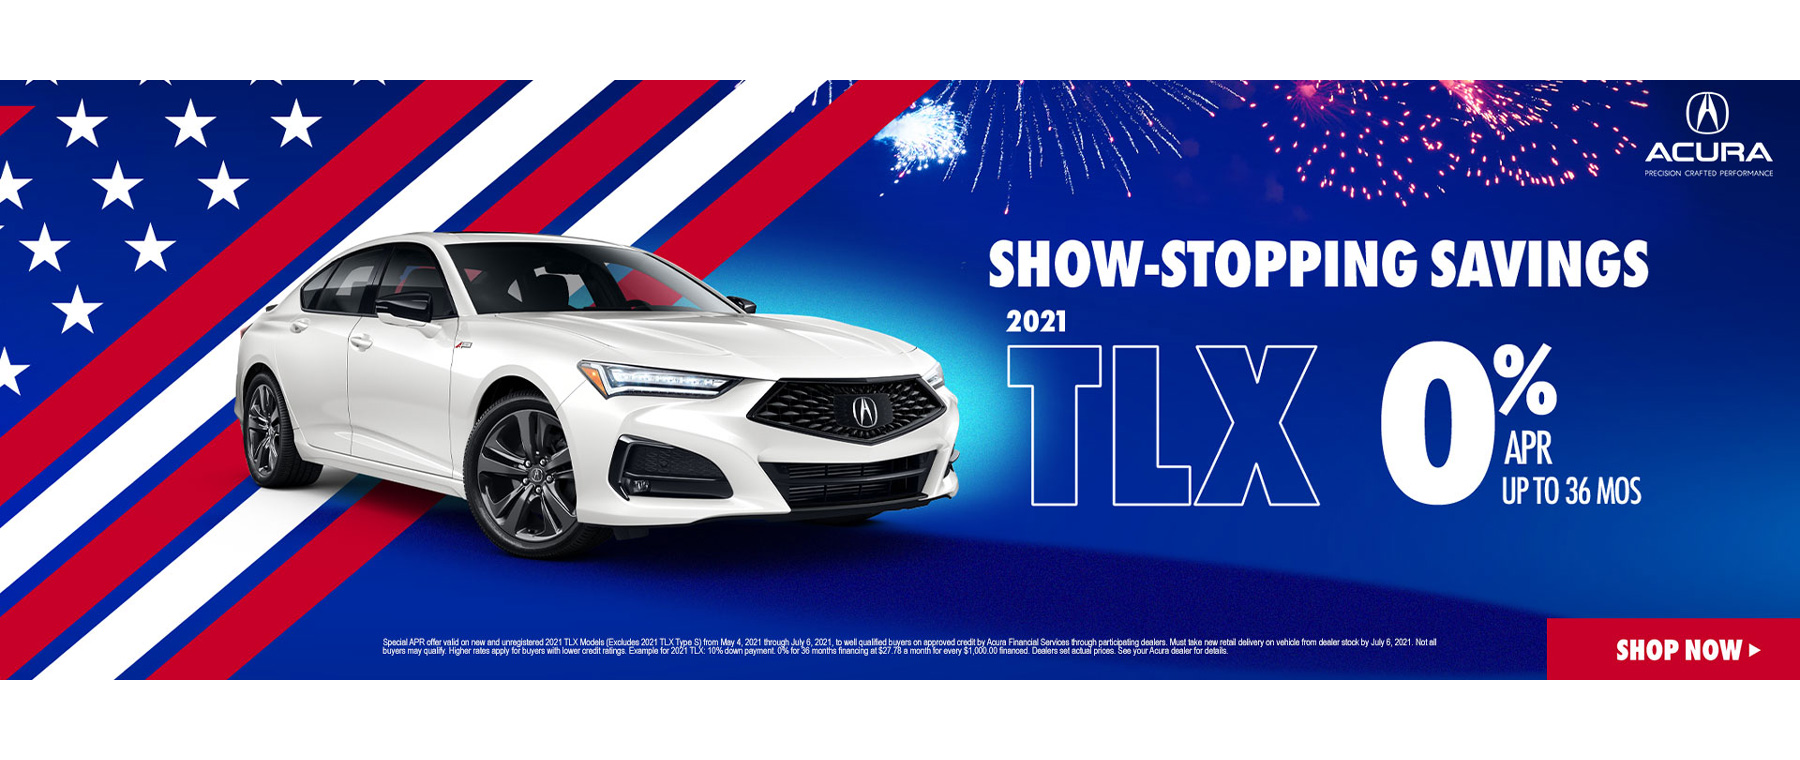 Acura TLX Lease and APR Special